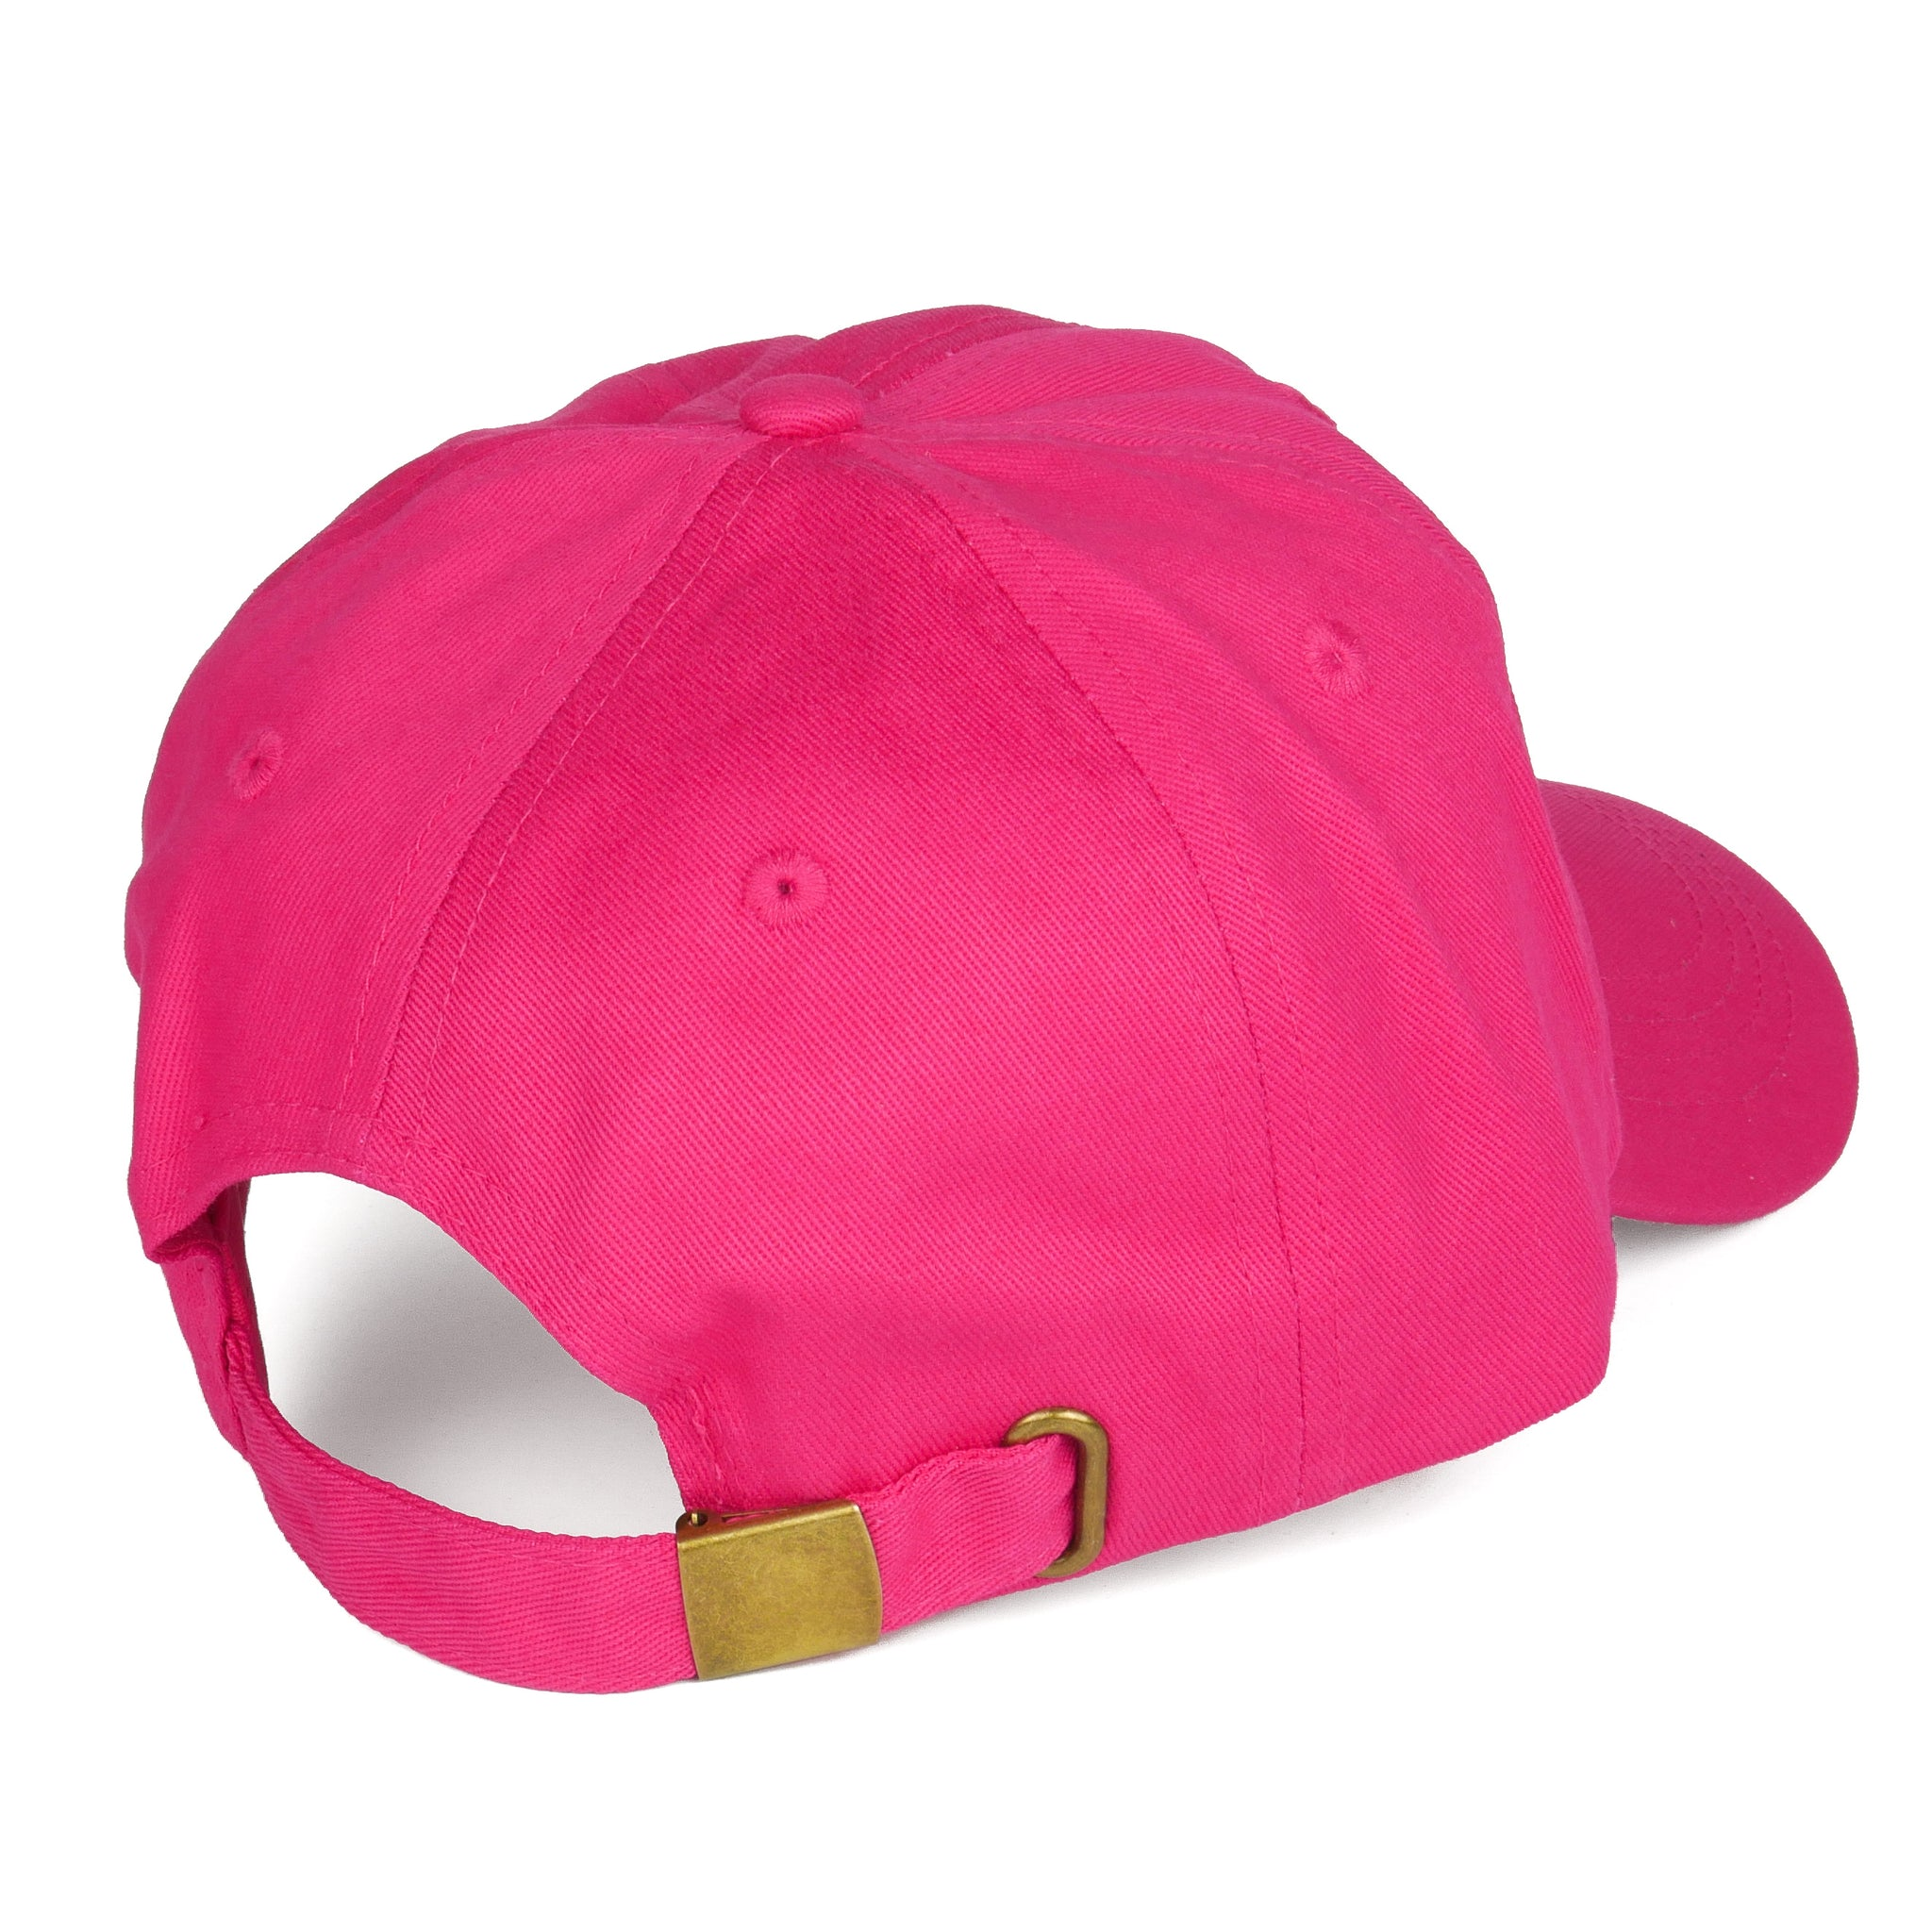 The Pops - 100% Cotton - Hot Pink